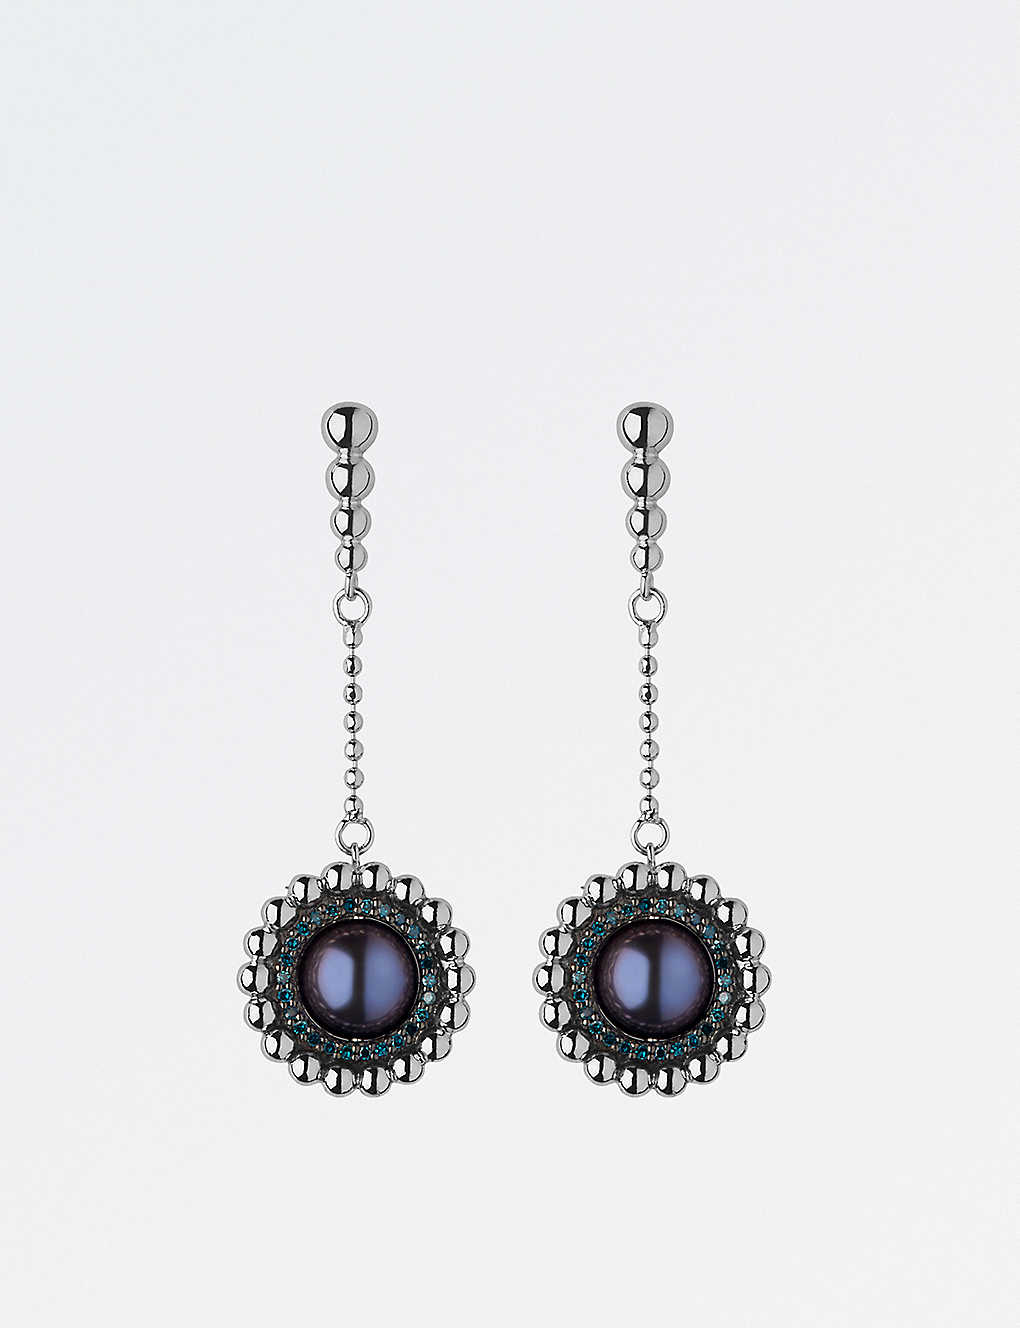 4a0a4c4f0 LINKS OF LONDON Effervescence sterling silver, diamond and pearl drop  earrings